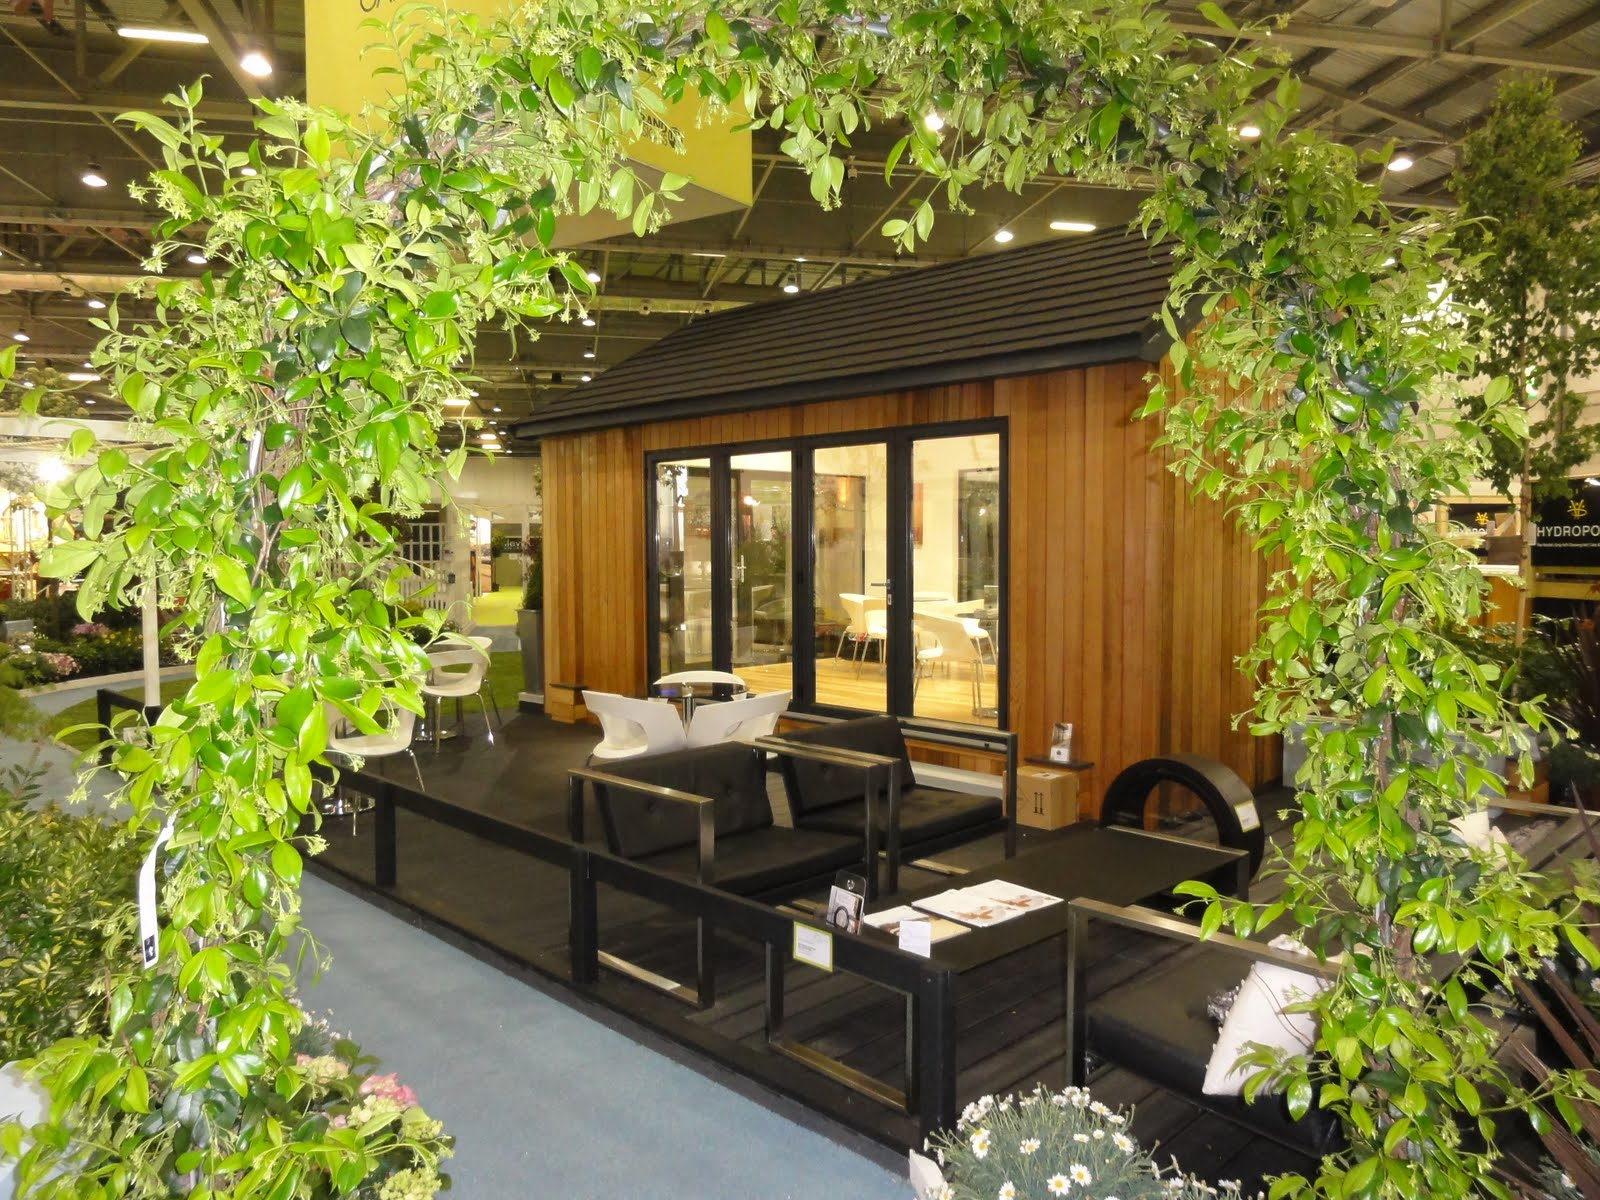 garden spaces uk limited official news